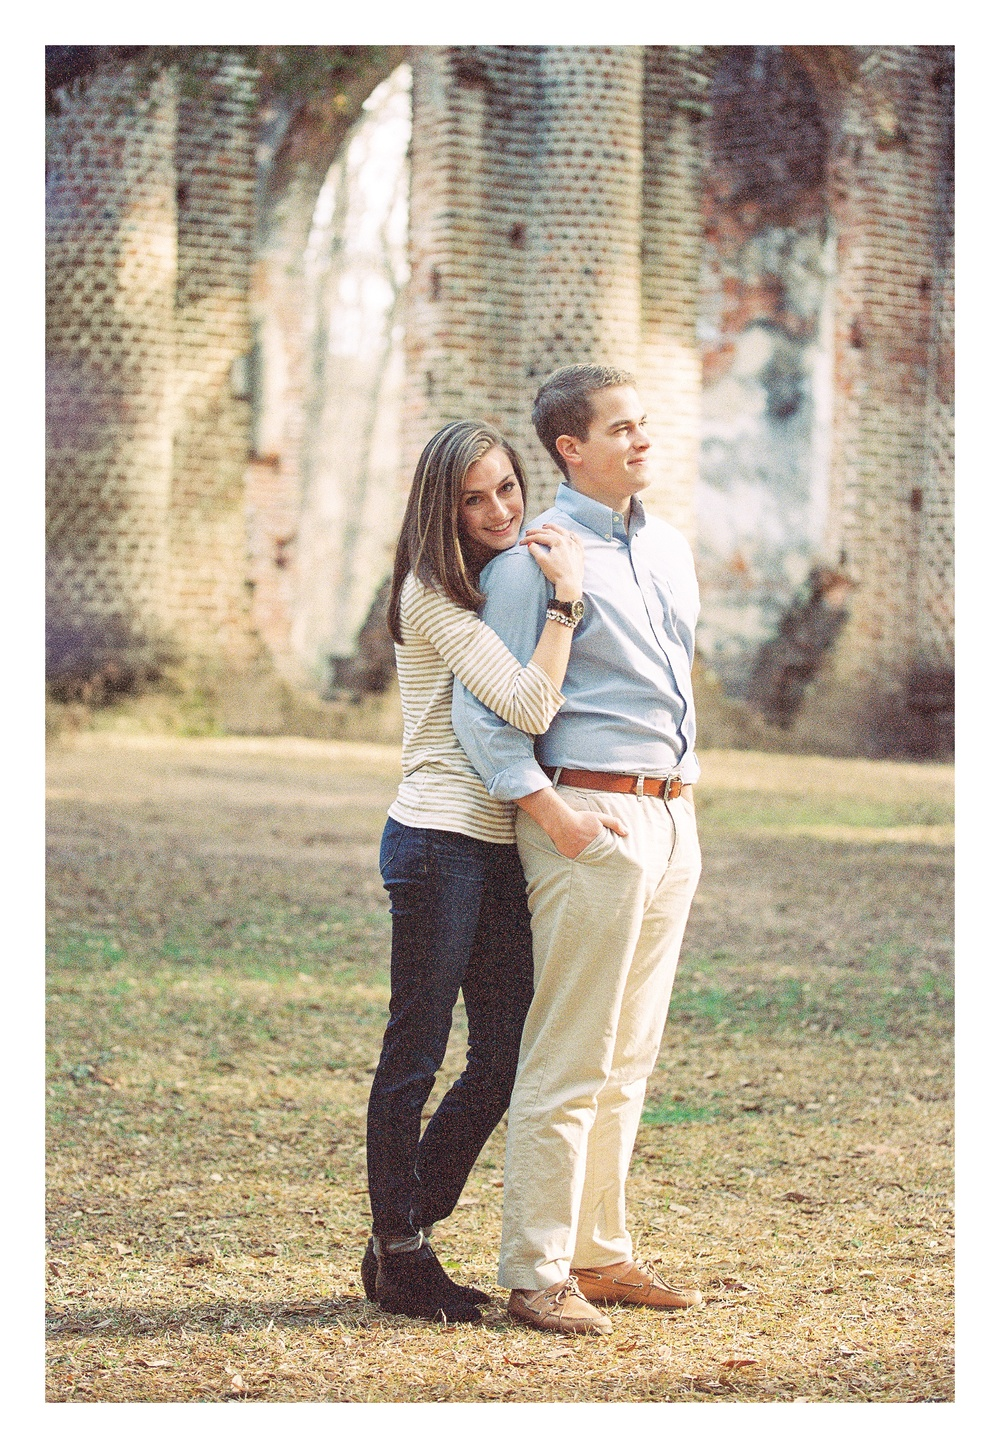 Beaufort engagement photographer captures couple embracing during engagement photos at Old Sheldon Ruins in Beaufort, SC